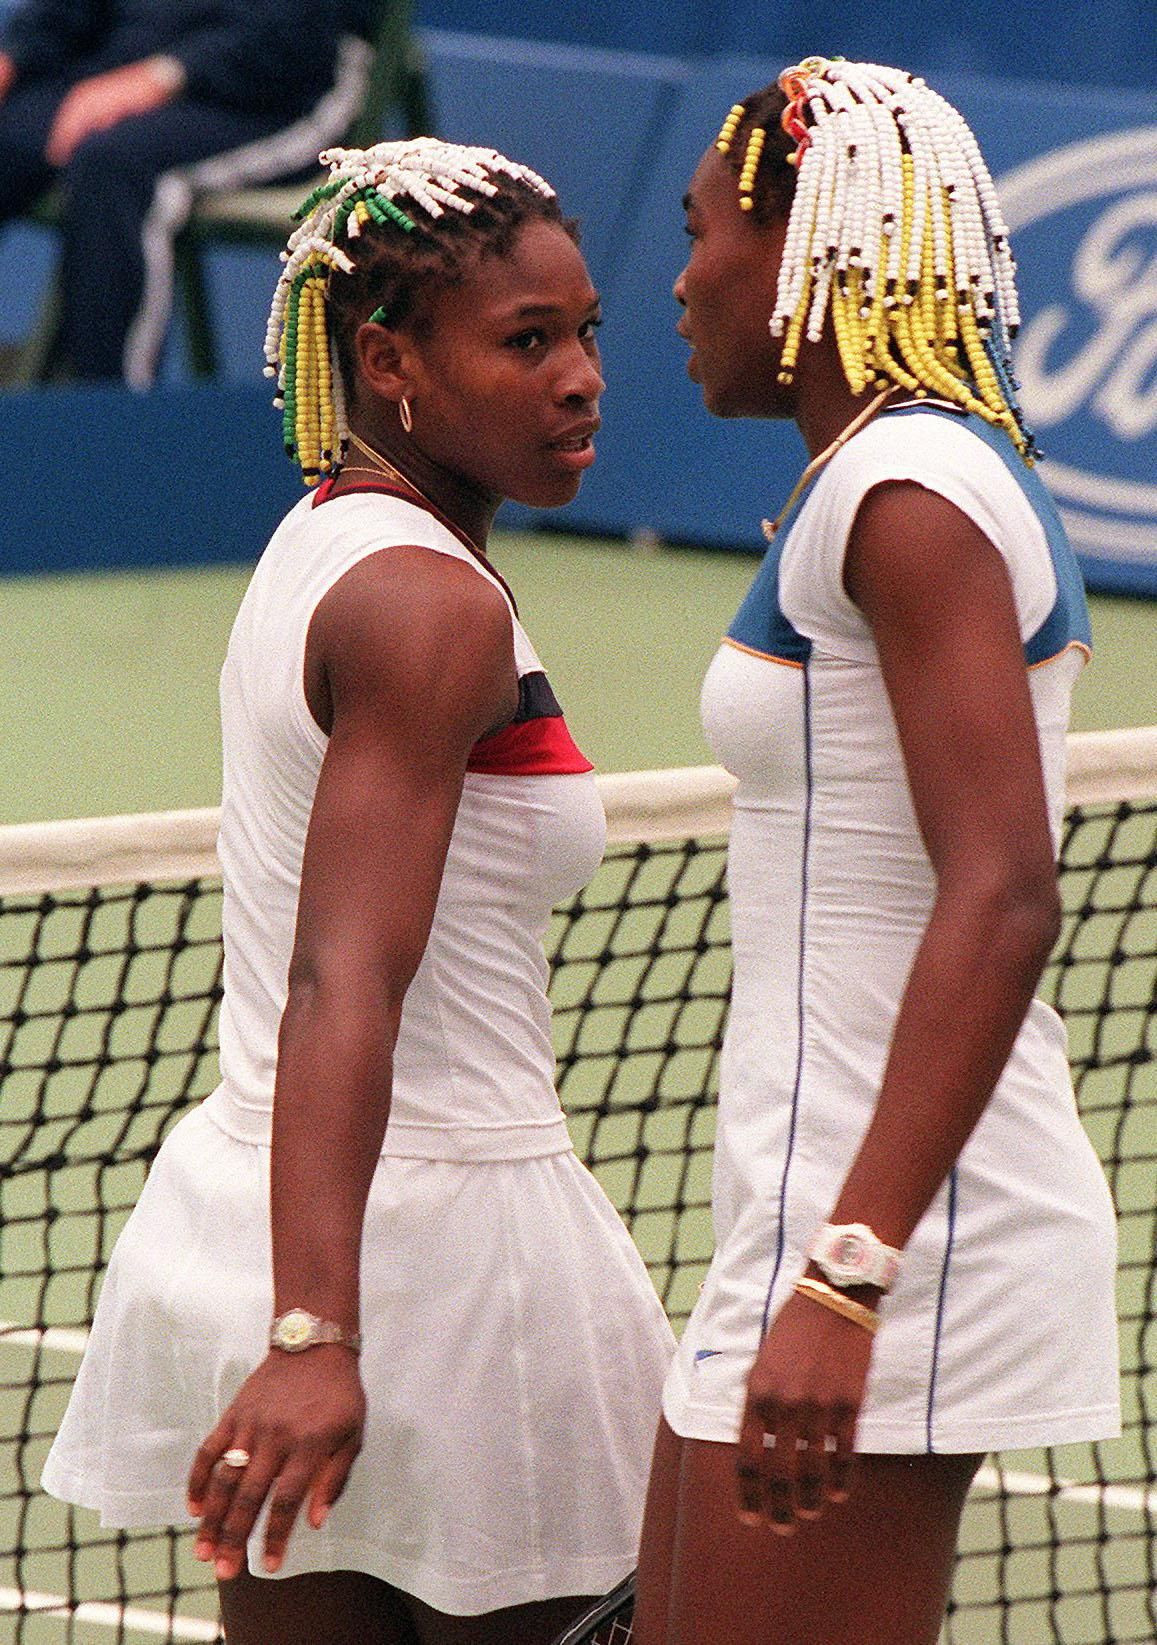 Serena and Venus Williams have been battling each other for 20 years